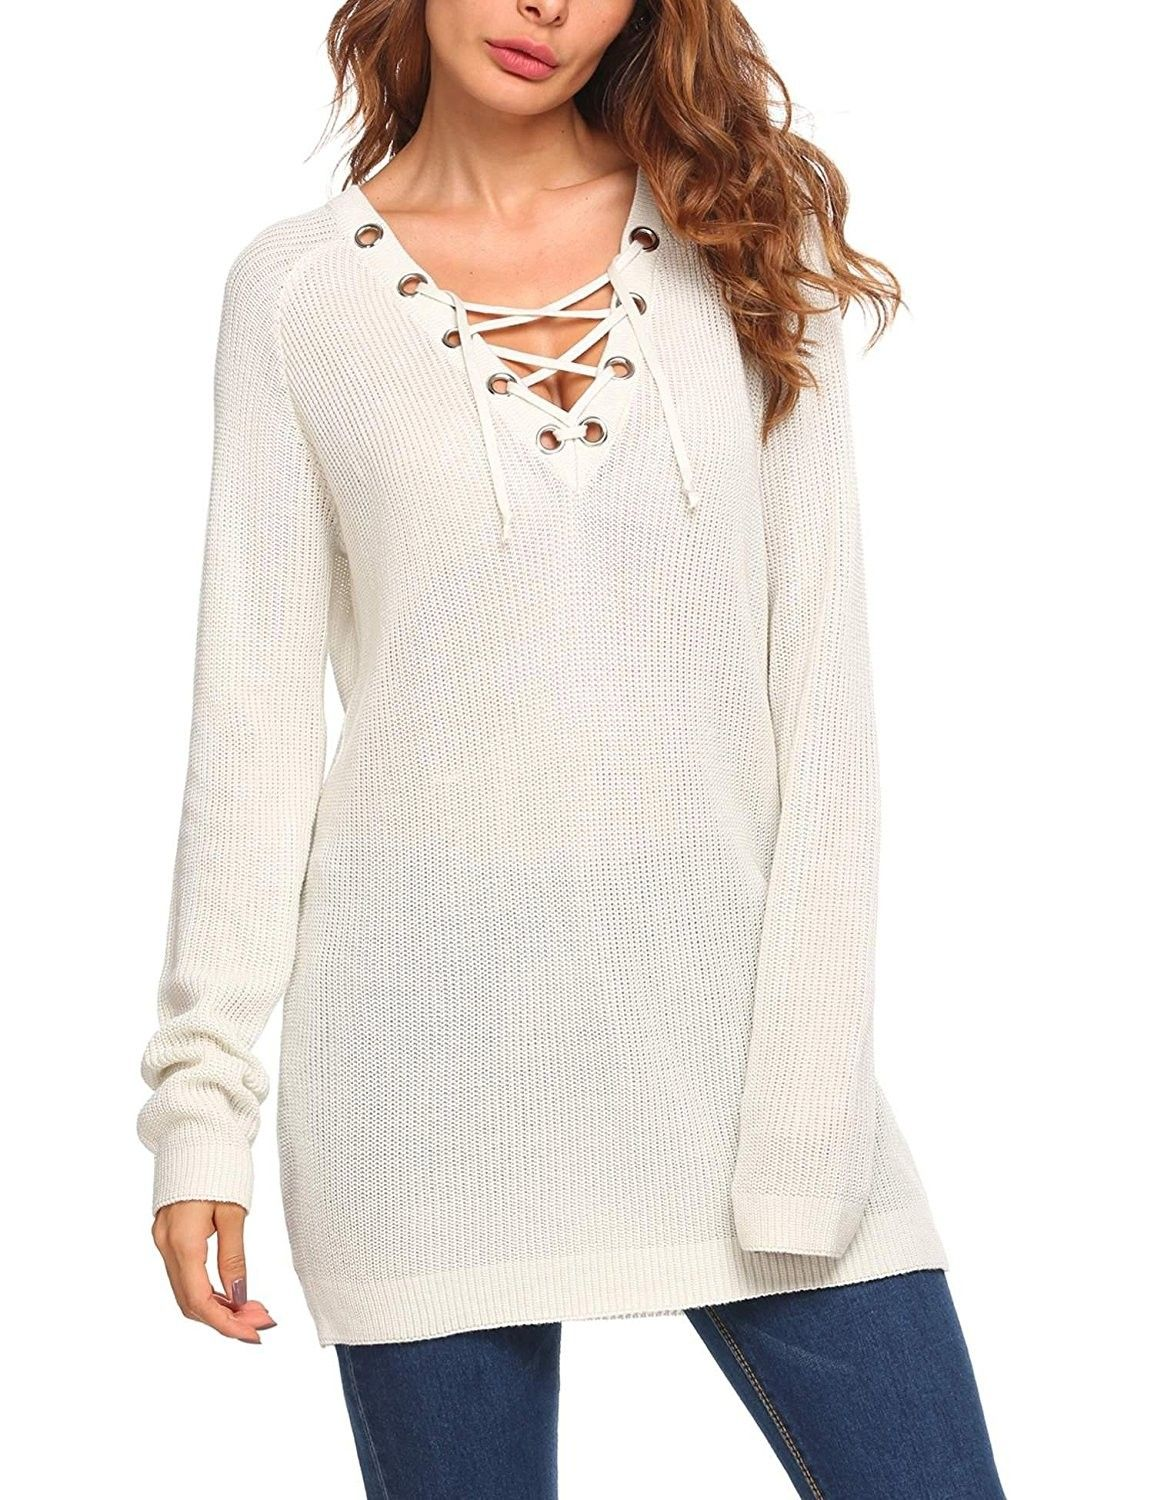 Women s Loose Fit Lace Up V Neck Long Sleeve Knit Sweater Tops ... 3bb8f7a48